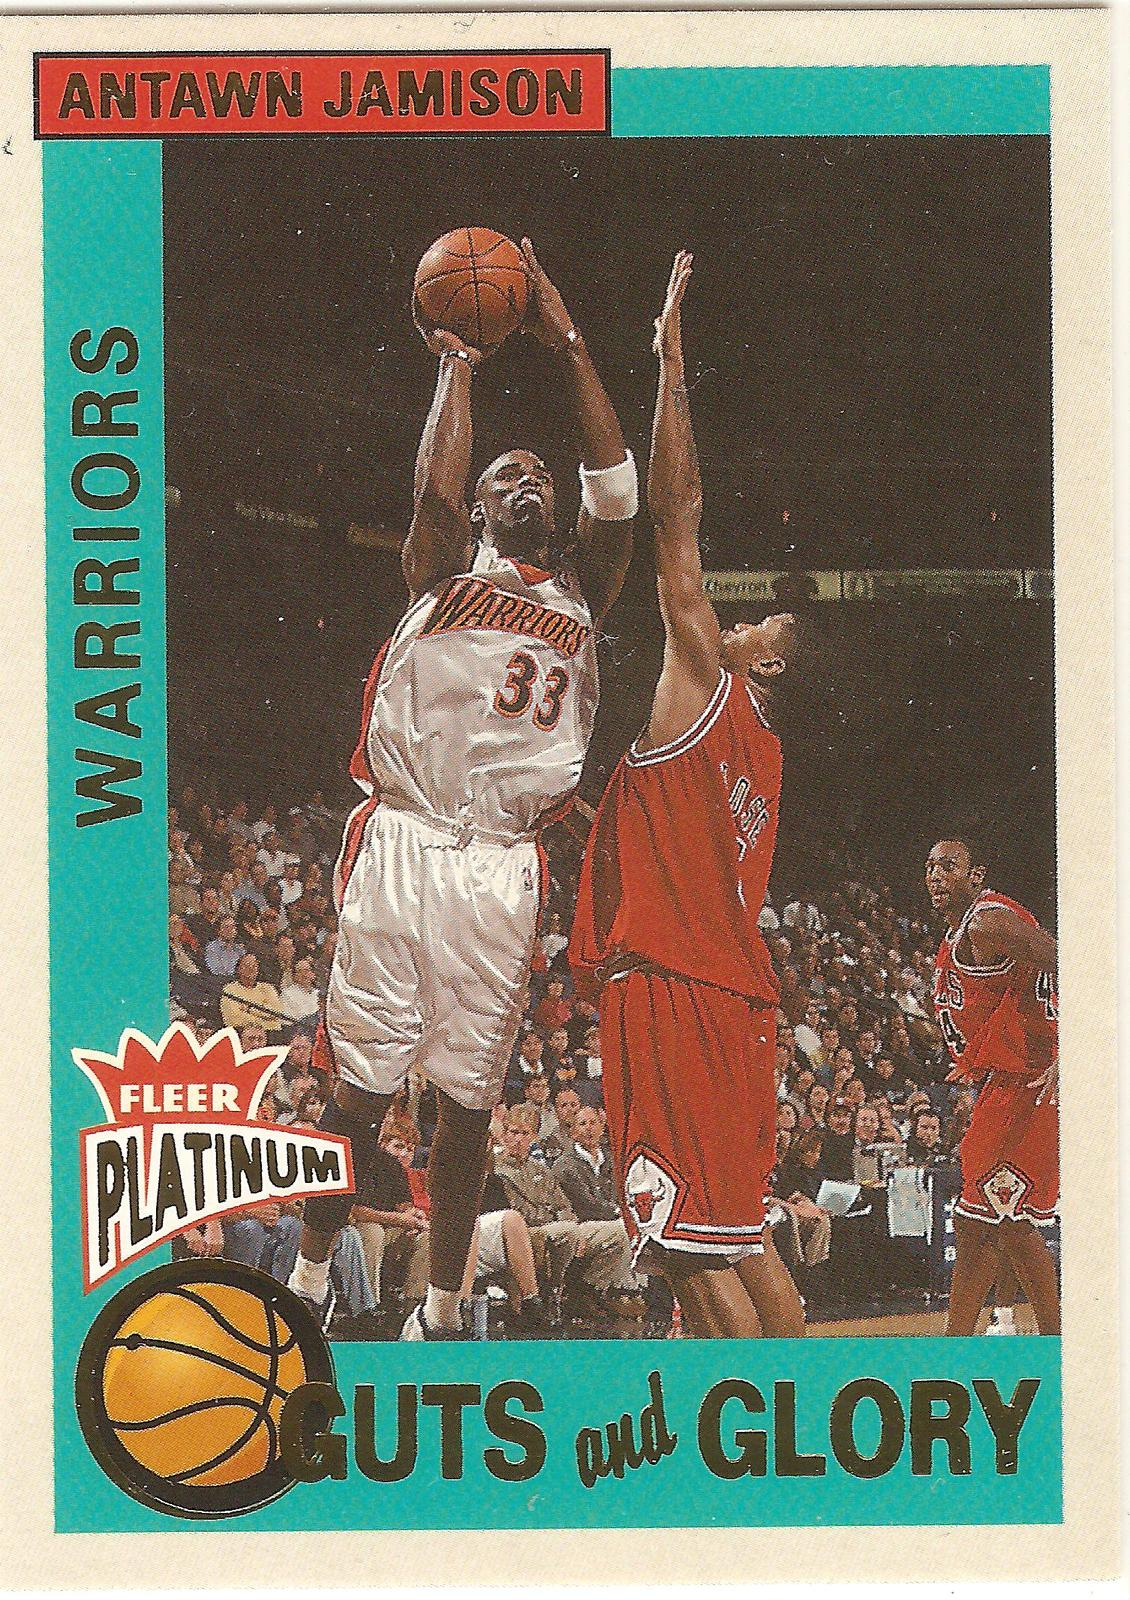 Primary image for Antawn Jamison Fleer Platinum 02-03 #3 Guts and Glory Golden State Warriors